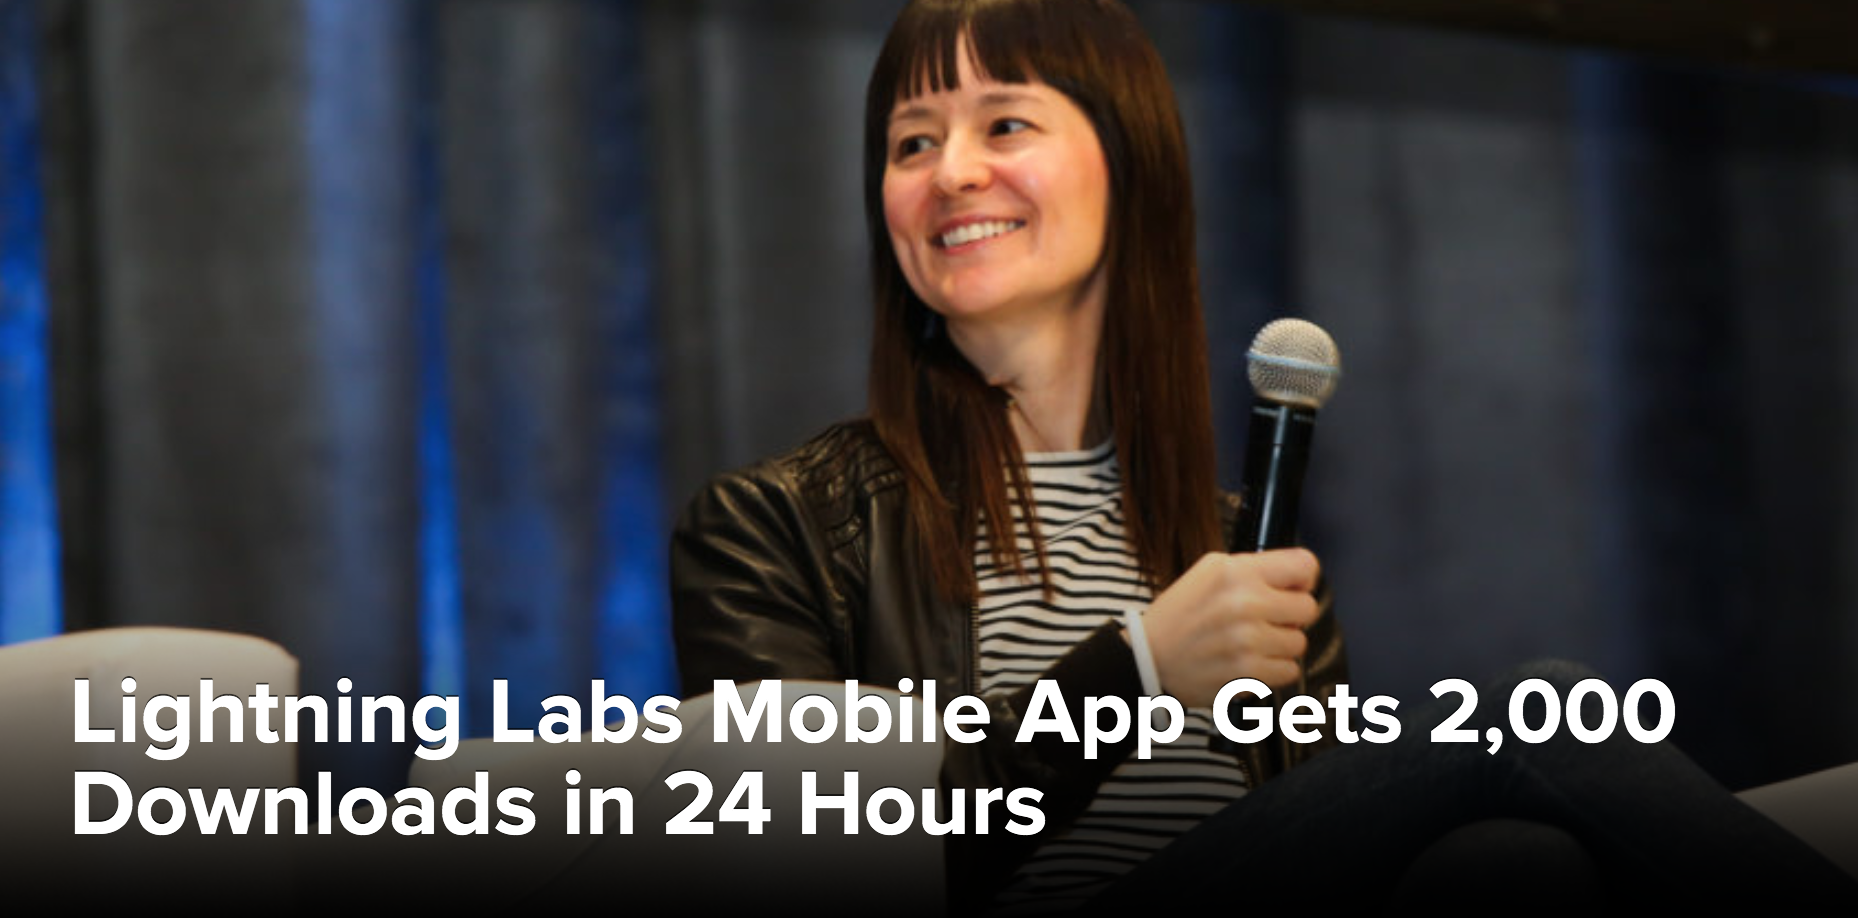 Bitcoin's Lightning Labs Mobile App Gets 2,000 Downloads In 24 Hours (#GotBitcoin?)